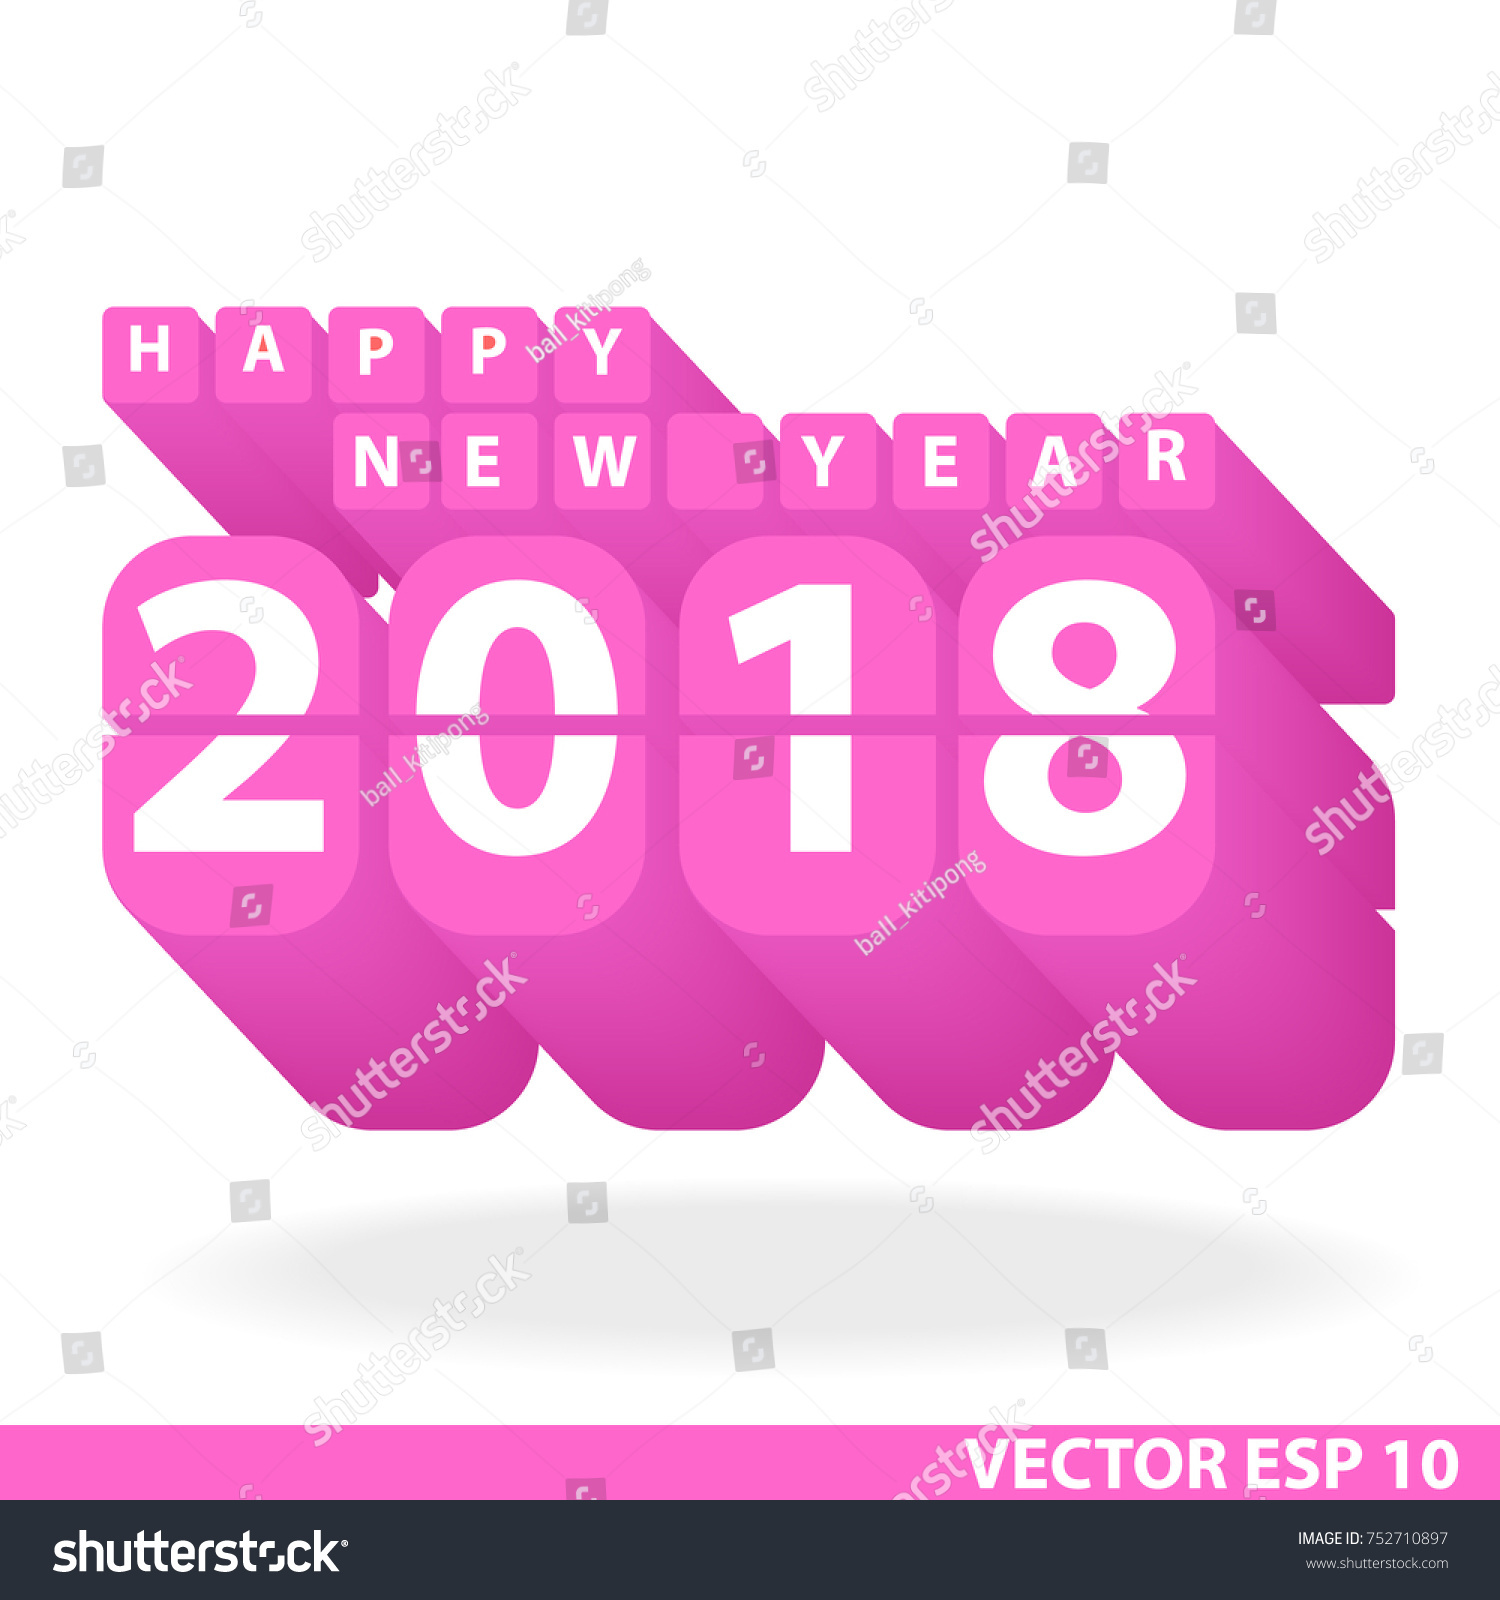 happy new year 2018 font design 3d pink